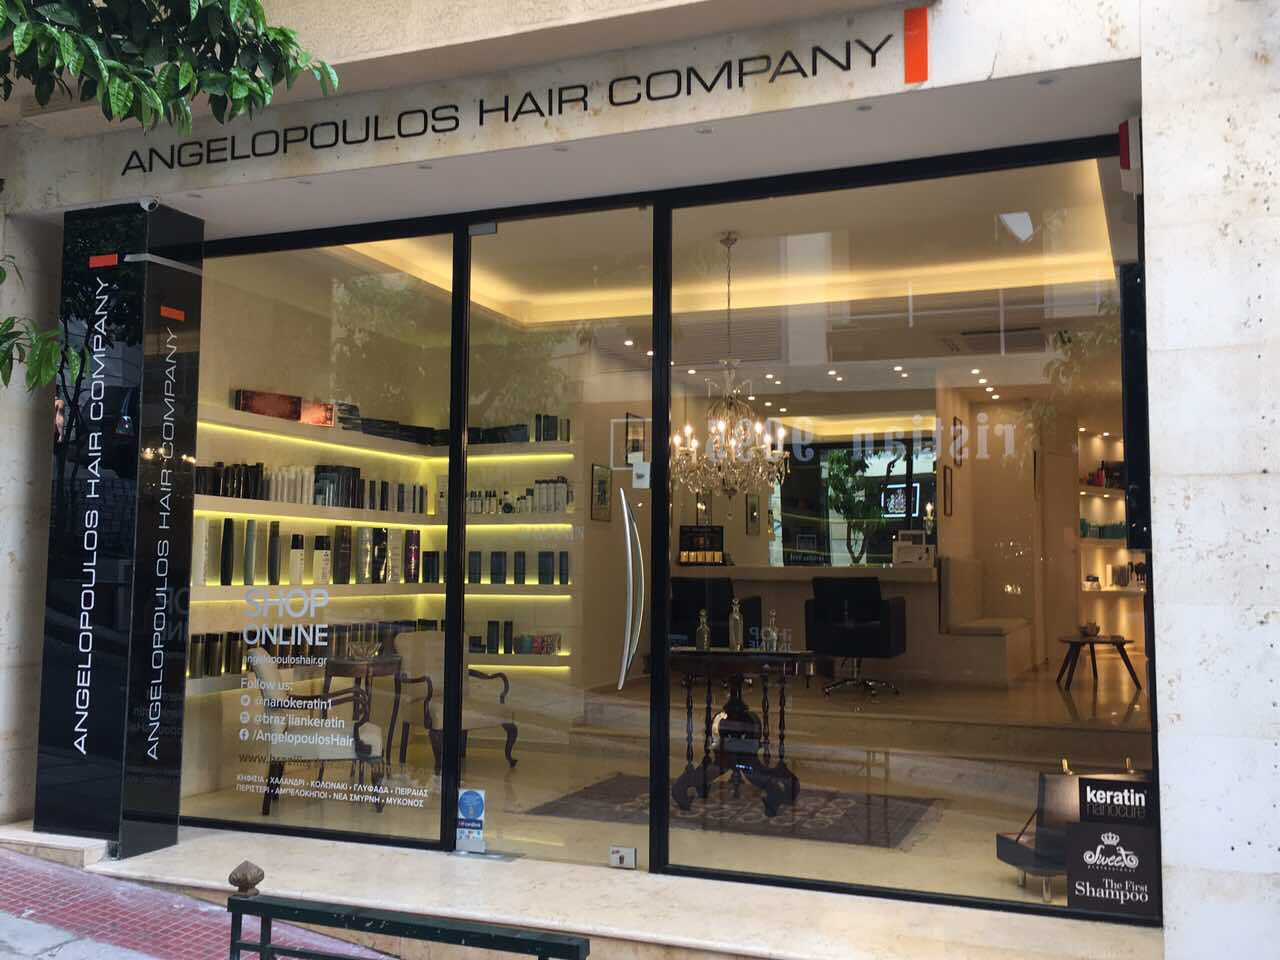 ANGELOPOULOS HAIR COMPANY: Franchise με εμπειρία και στιλ!